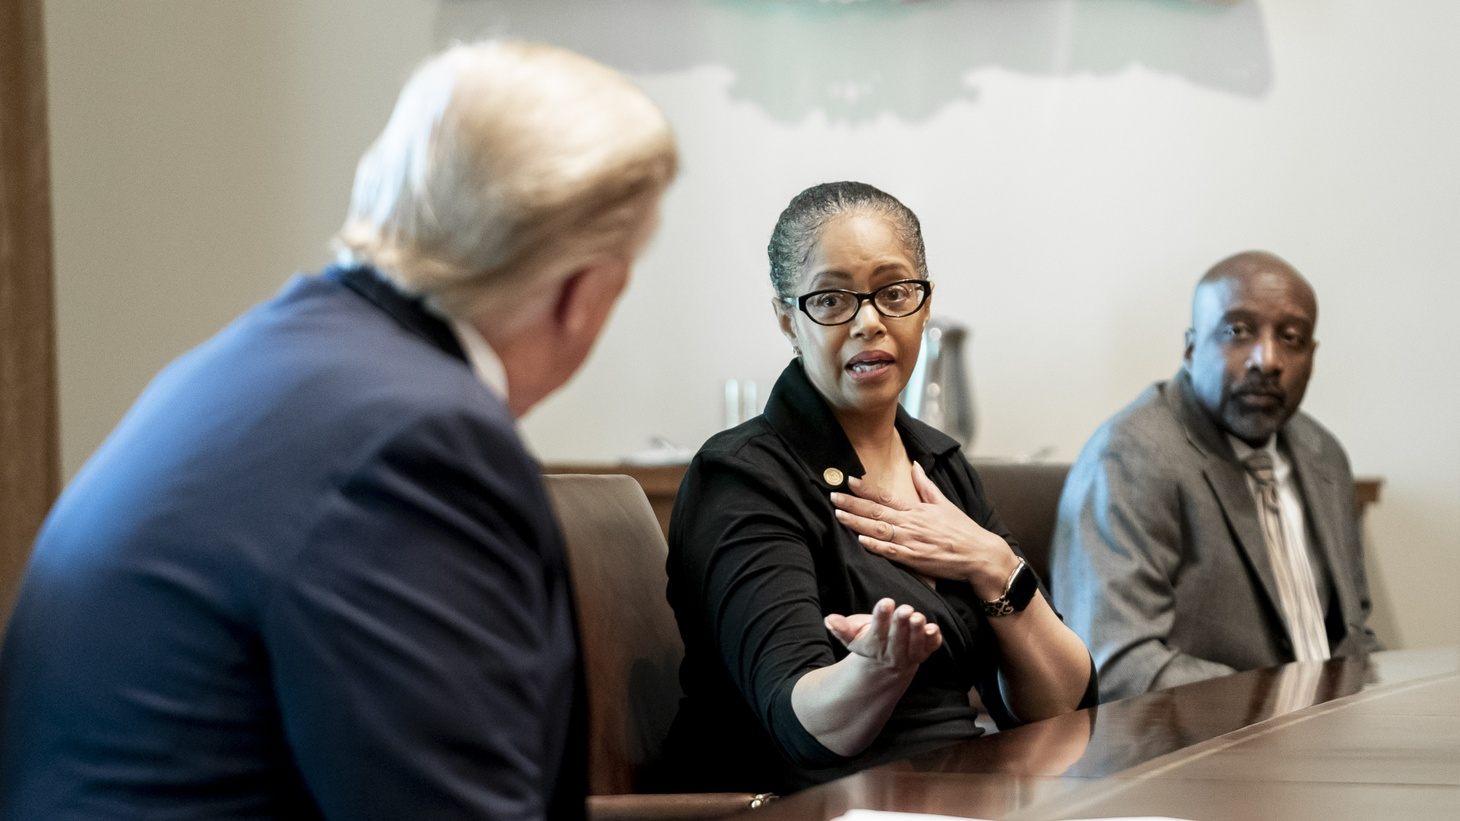 President Donald J. Trump listens as Michigan State Rep. Karen Whitsett talks about her recovery from the COVID-19 Coronavirus, Tuesday, April 14, 2020, in the Cabinet Room of the White House.